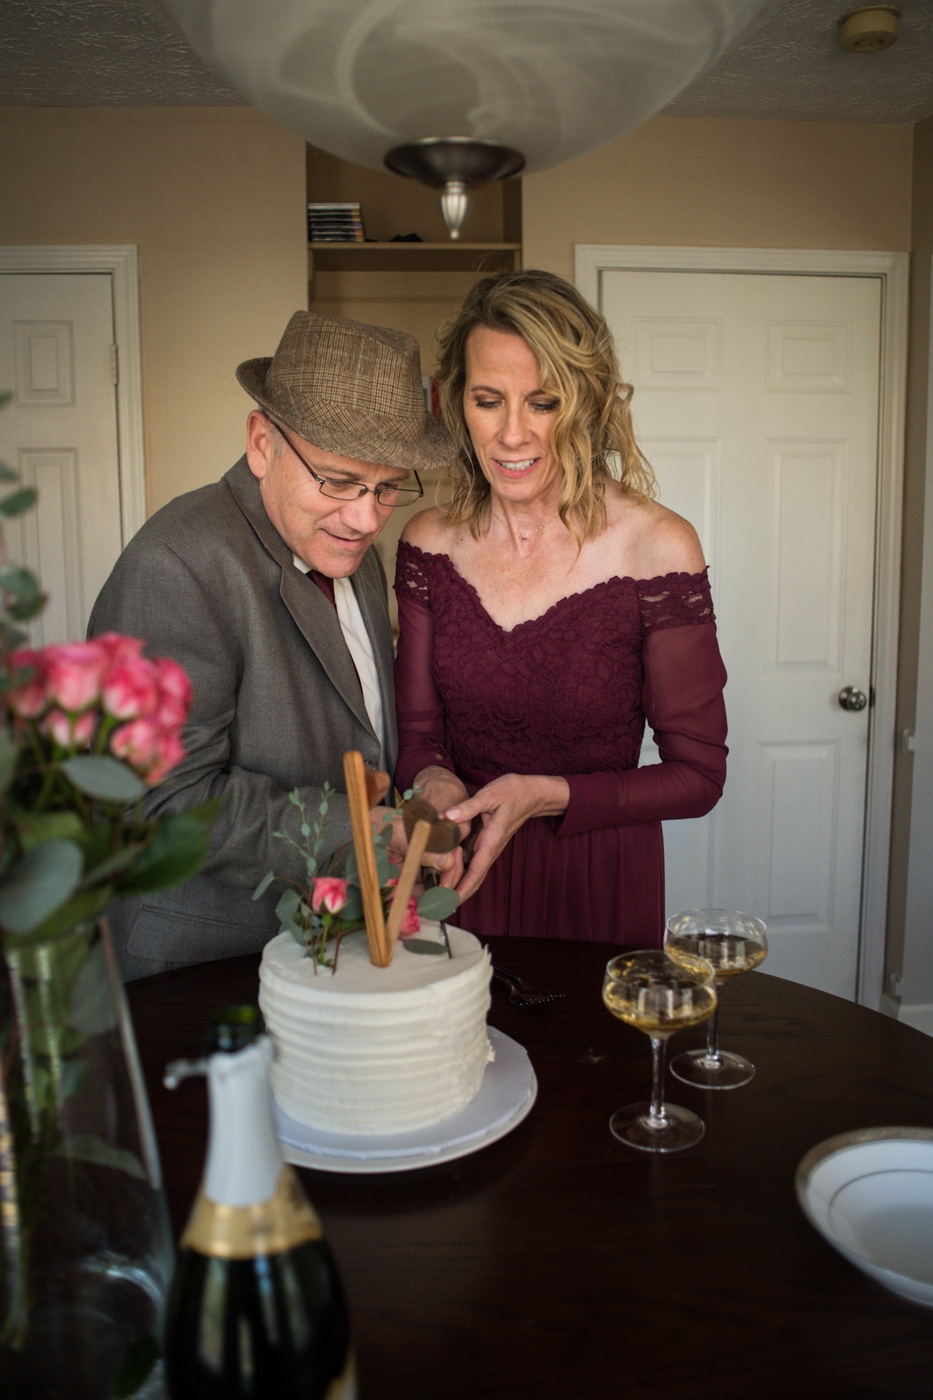 bride and groom cut wedding cake during at-home elopement